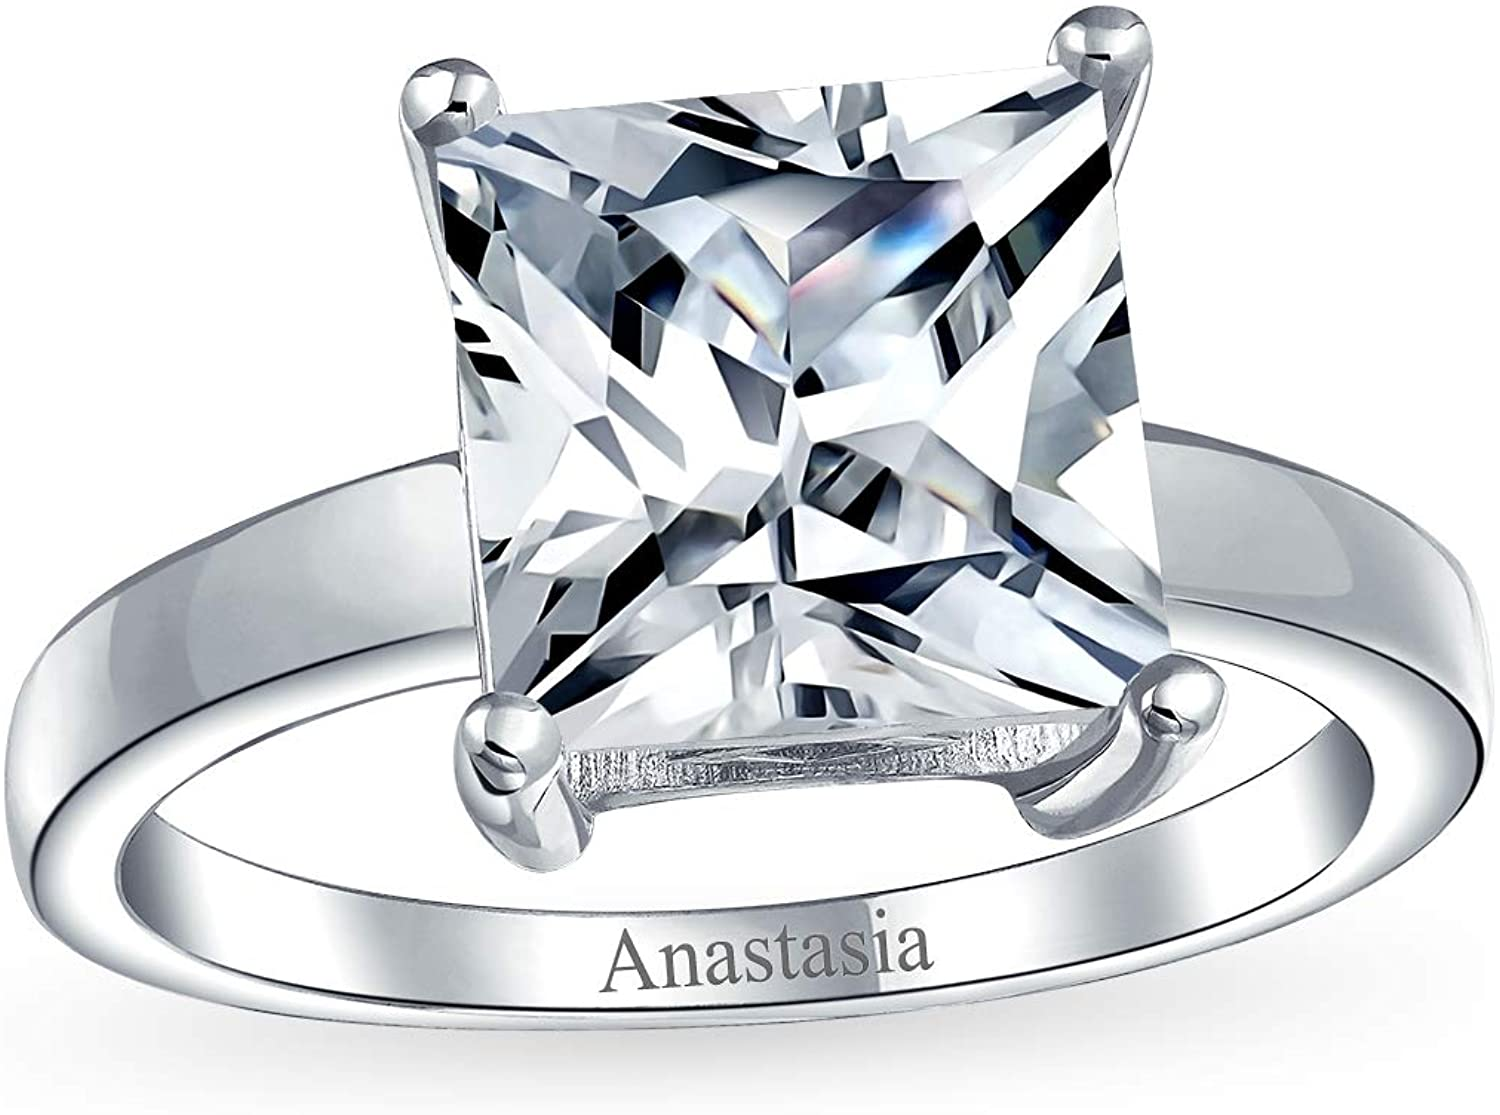 Elegant 2cts,3ct,4ct Princess Cut Black Diamond Solitaire Unisex Ring in 925 Silver